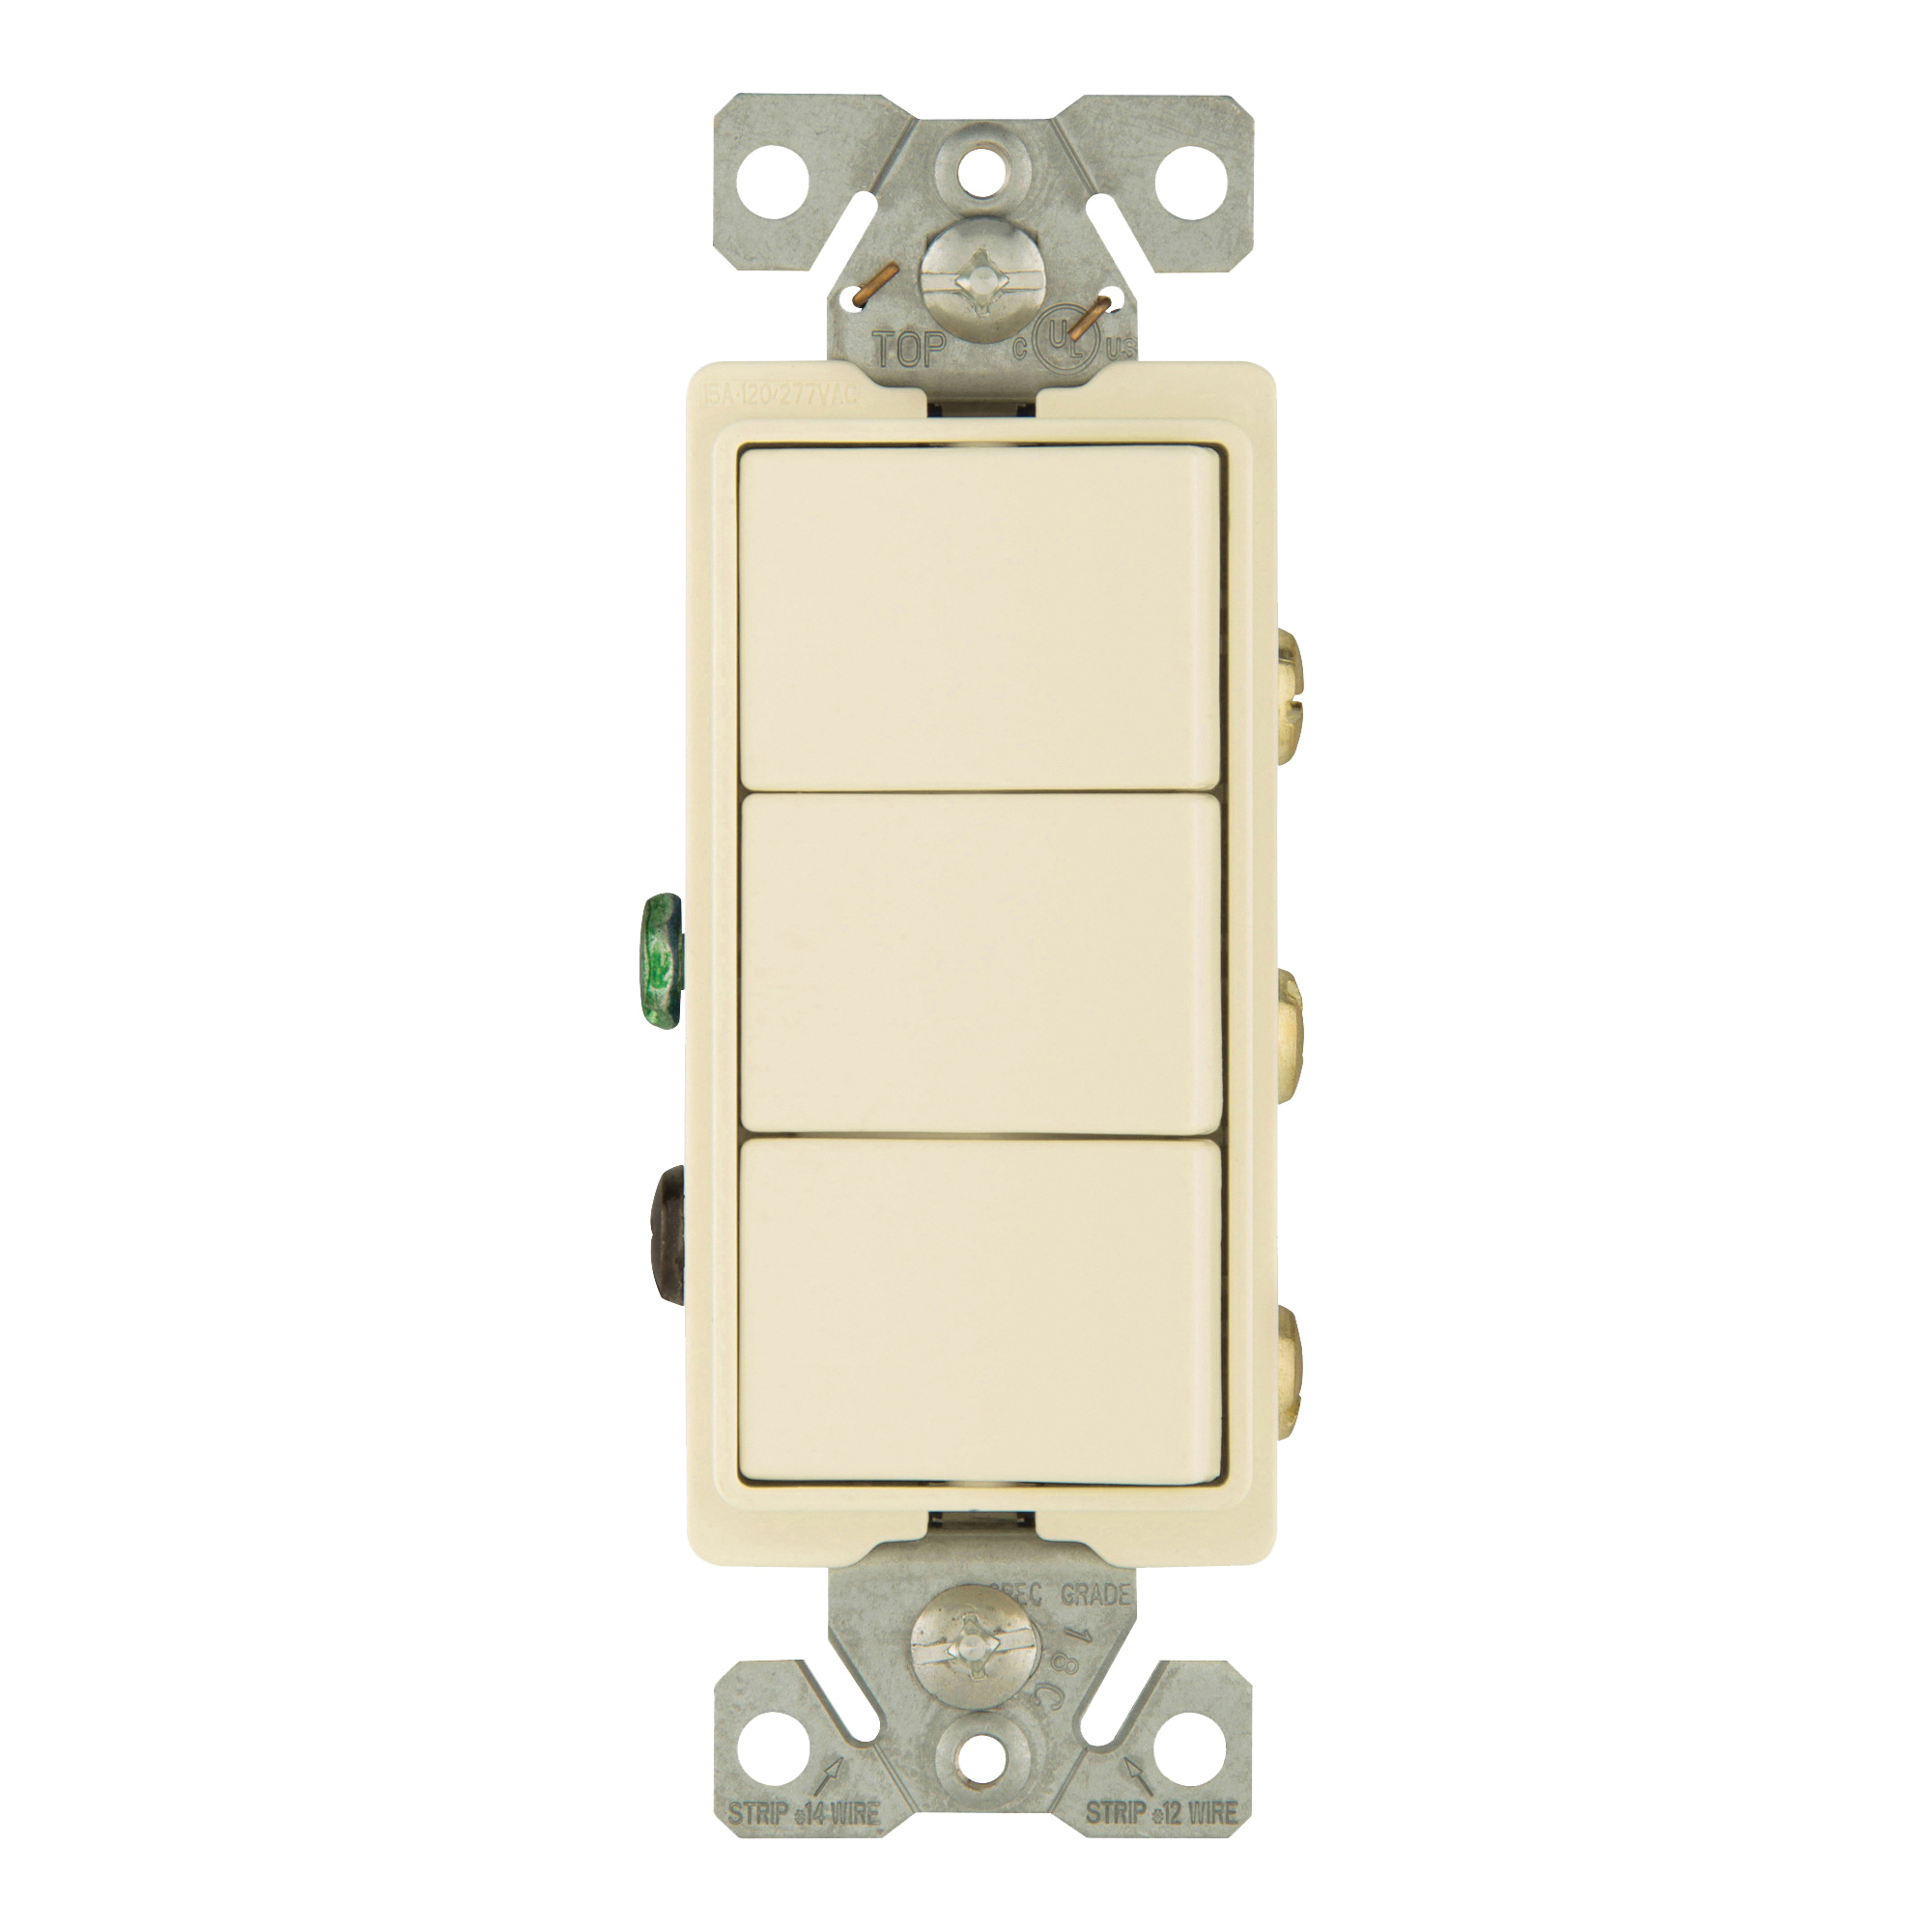 Picture of Eaton Cooper Wiring 7729LA-SP Combination Switch, 1-Pole, 15 A, 120/277 V, Light Almond